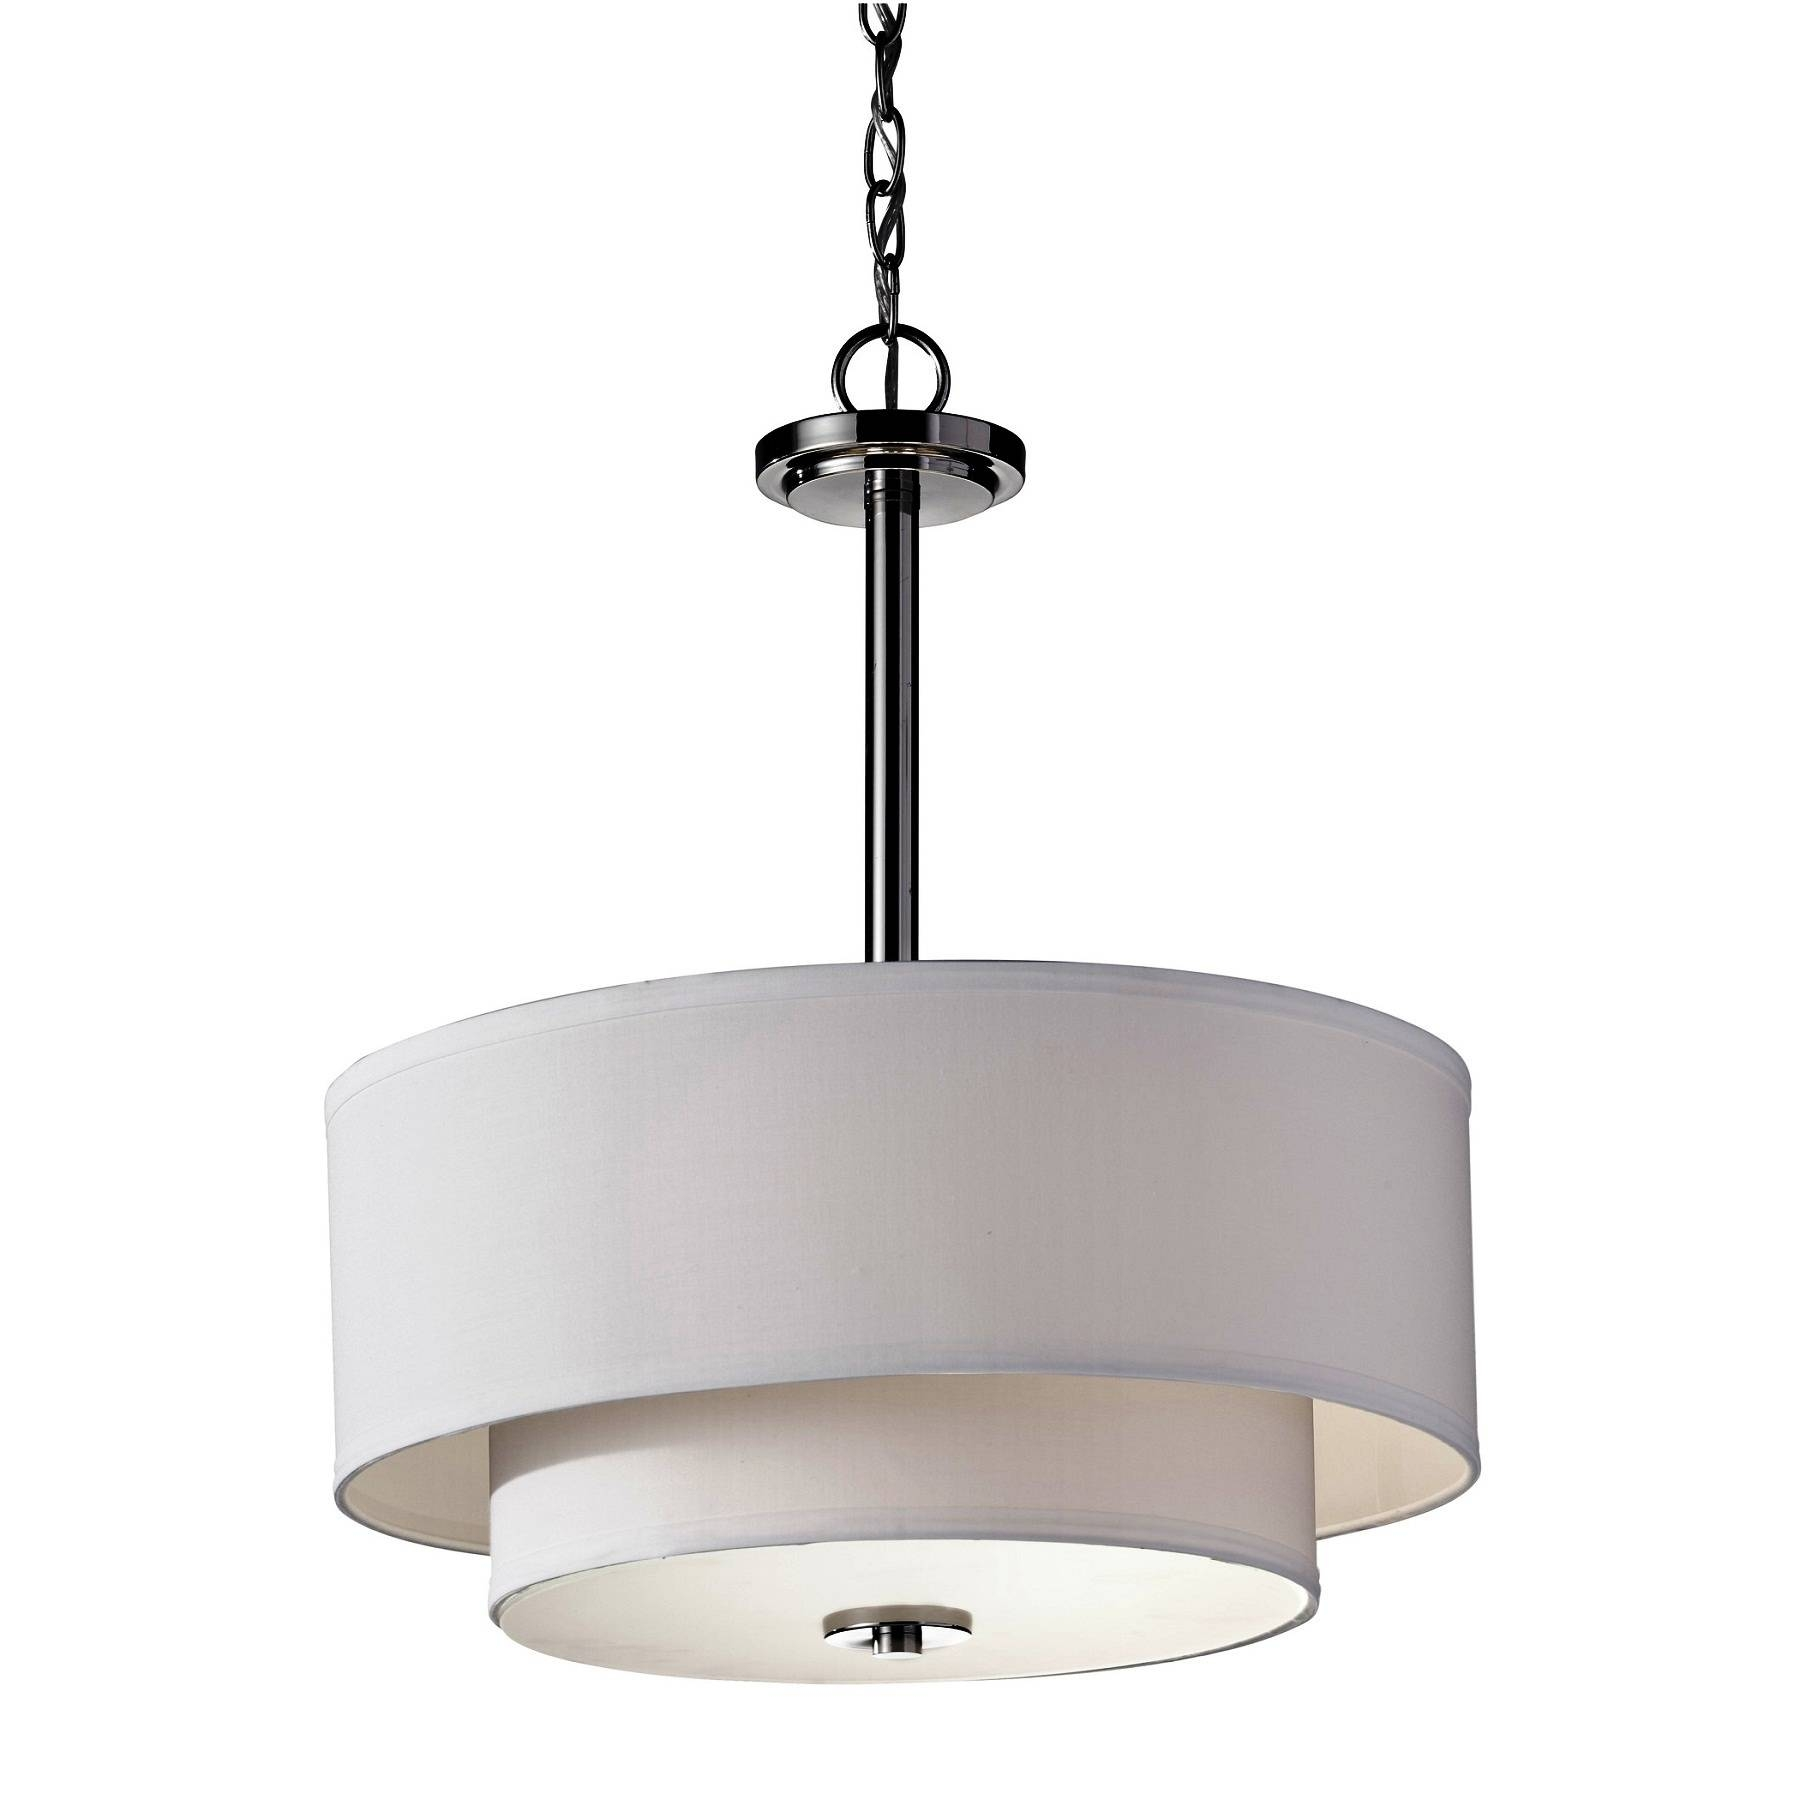 Crate And Barrel Chandelier – Tendr intended for Crate and Barrel Shades (Image 4 of 15)